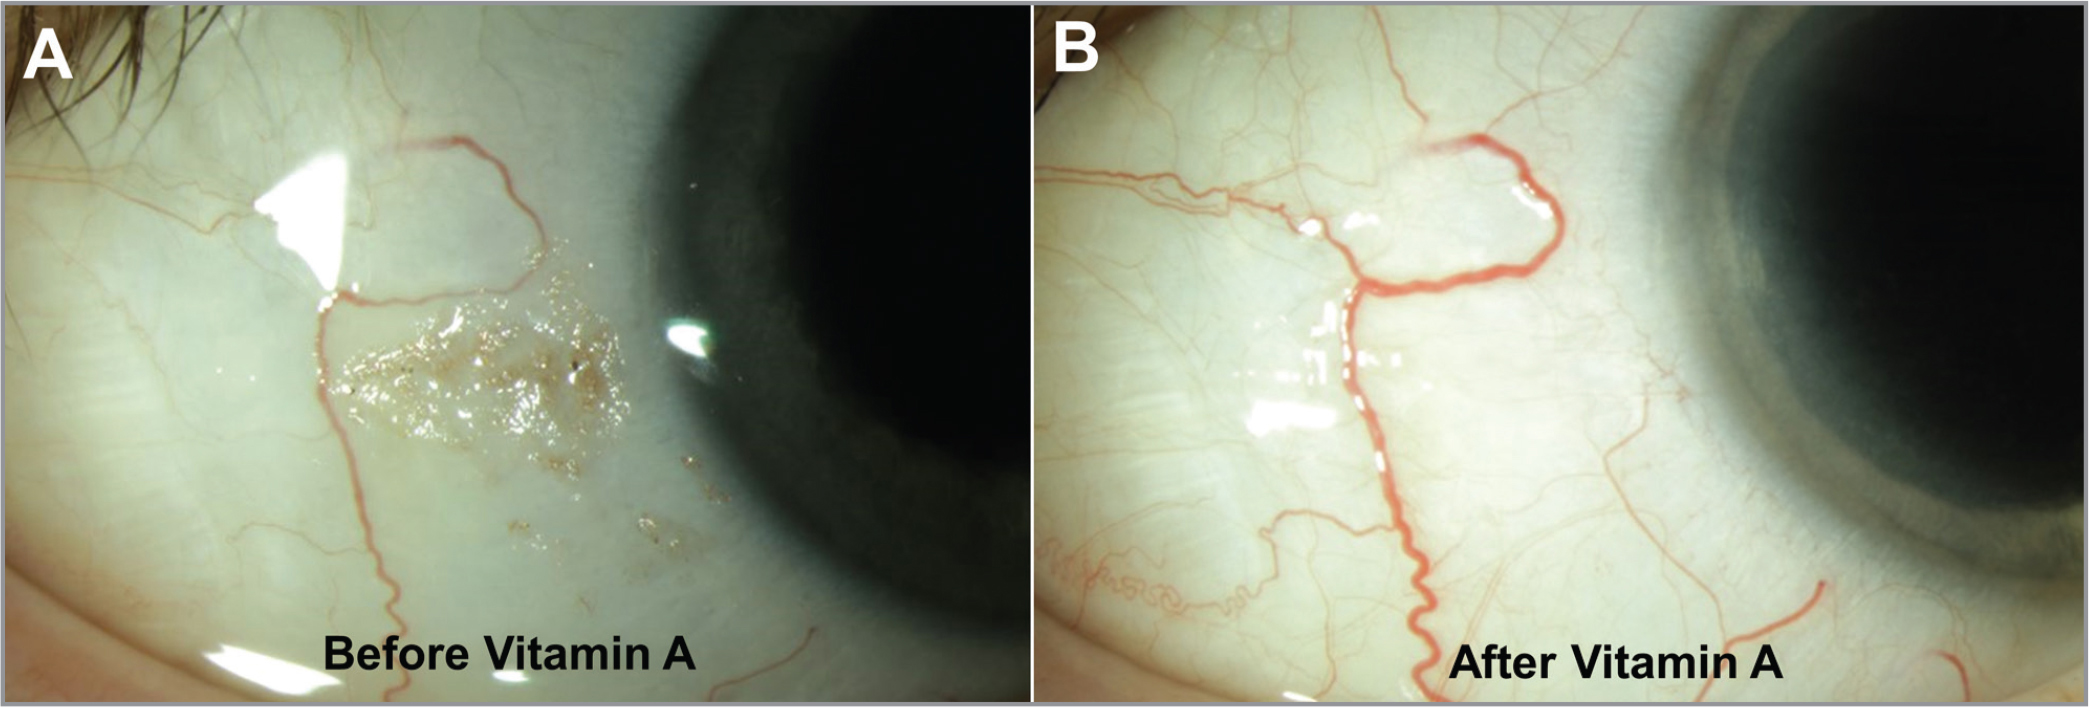 Slit-lamp photographs of a patient with vitamin A deficiency (A) before and (B) 3 months after intramuscular and oral vitamin A supplementation, showing resolution of Bitot's spots.